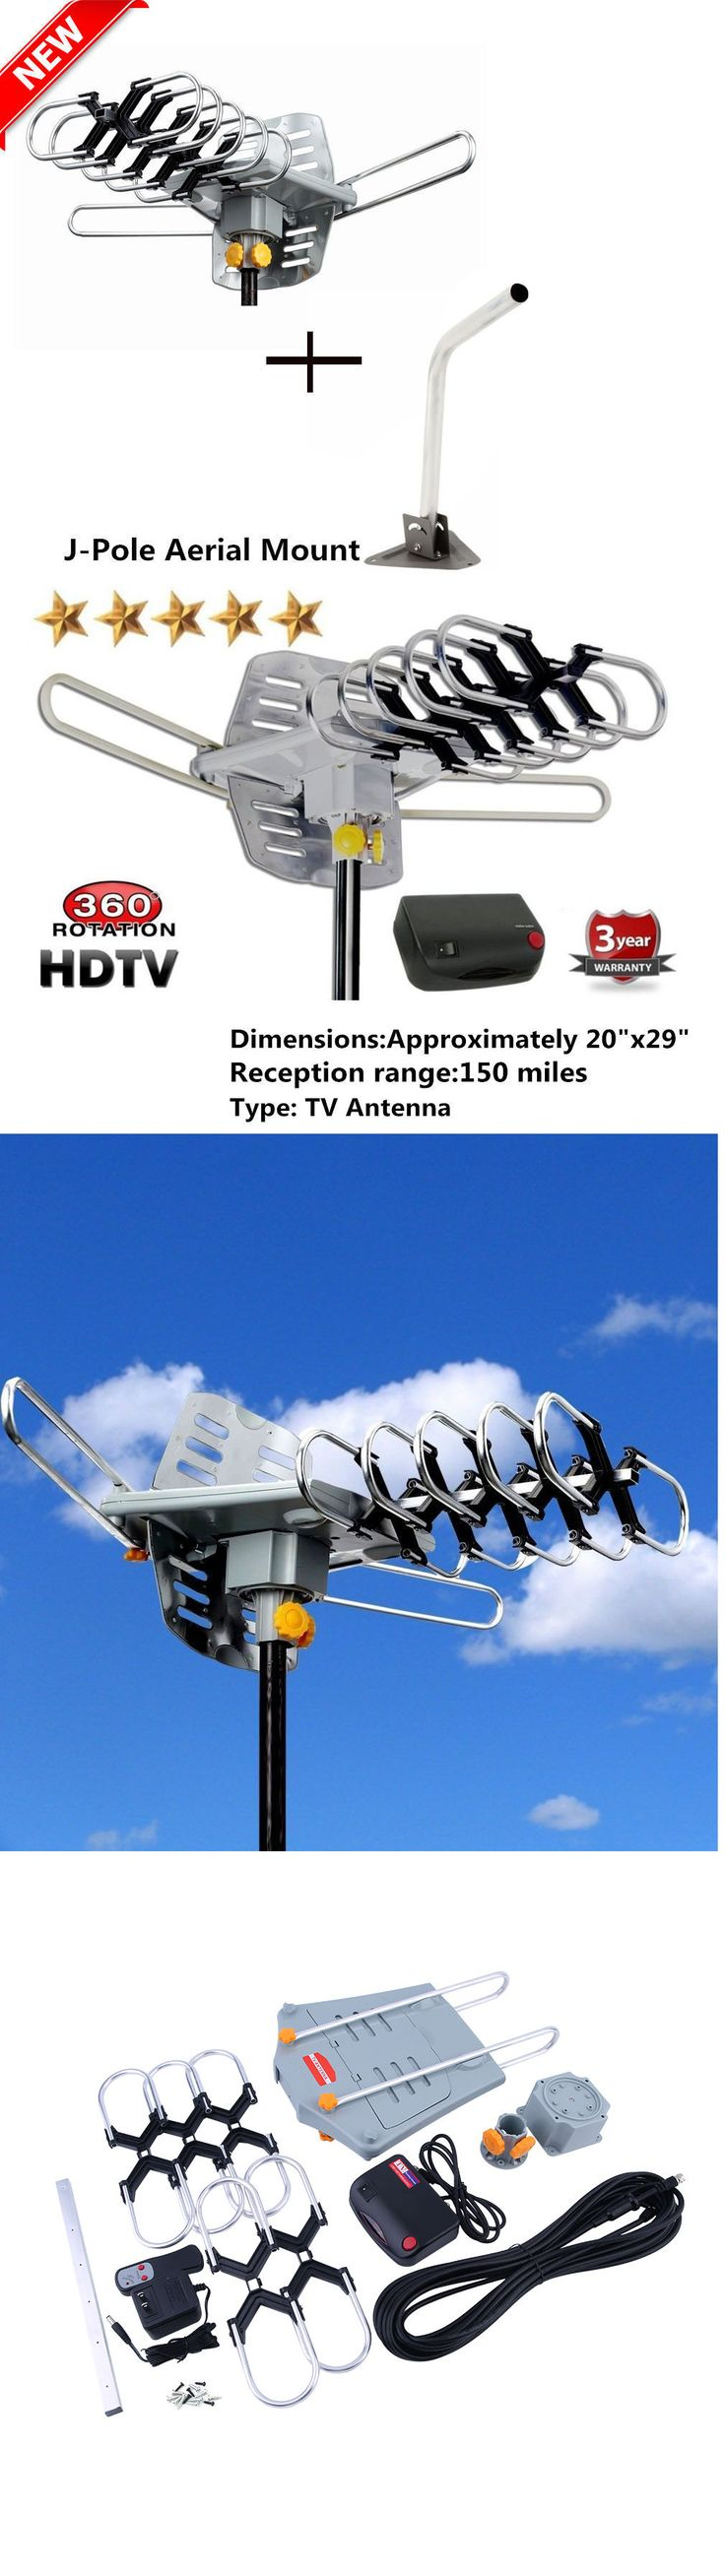 Antennas and Dishes: J-Pole Mast Mount + Outdoor Hdtv 36Db Rotor Antenna Remote 360°150 Miles Hd Tv K -> BUY IT NOW ONLY: $38.93 on eBay!